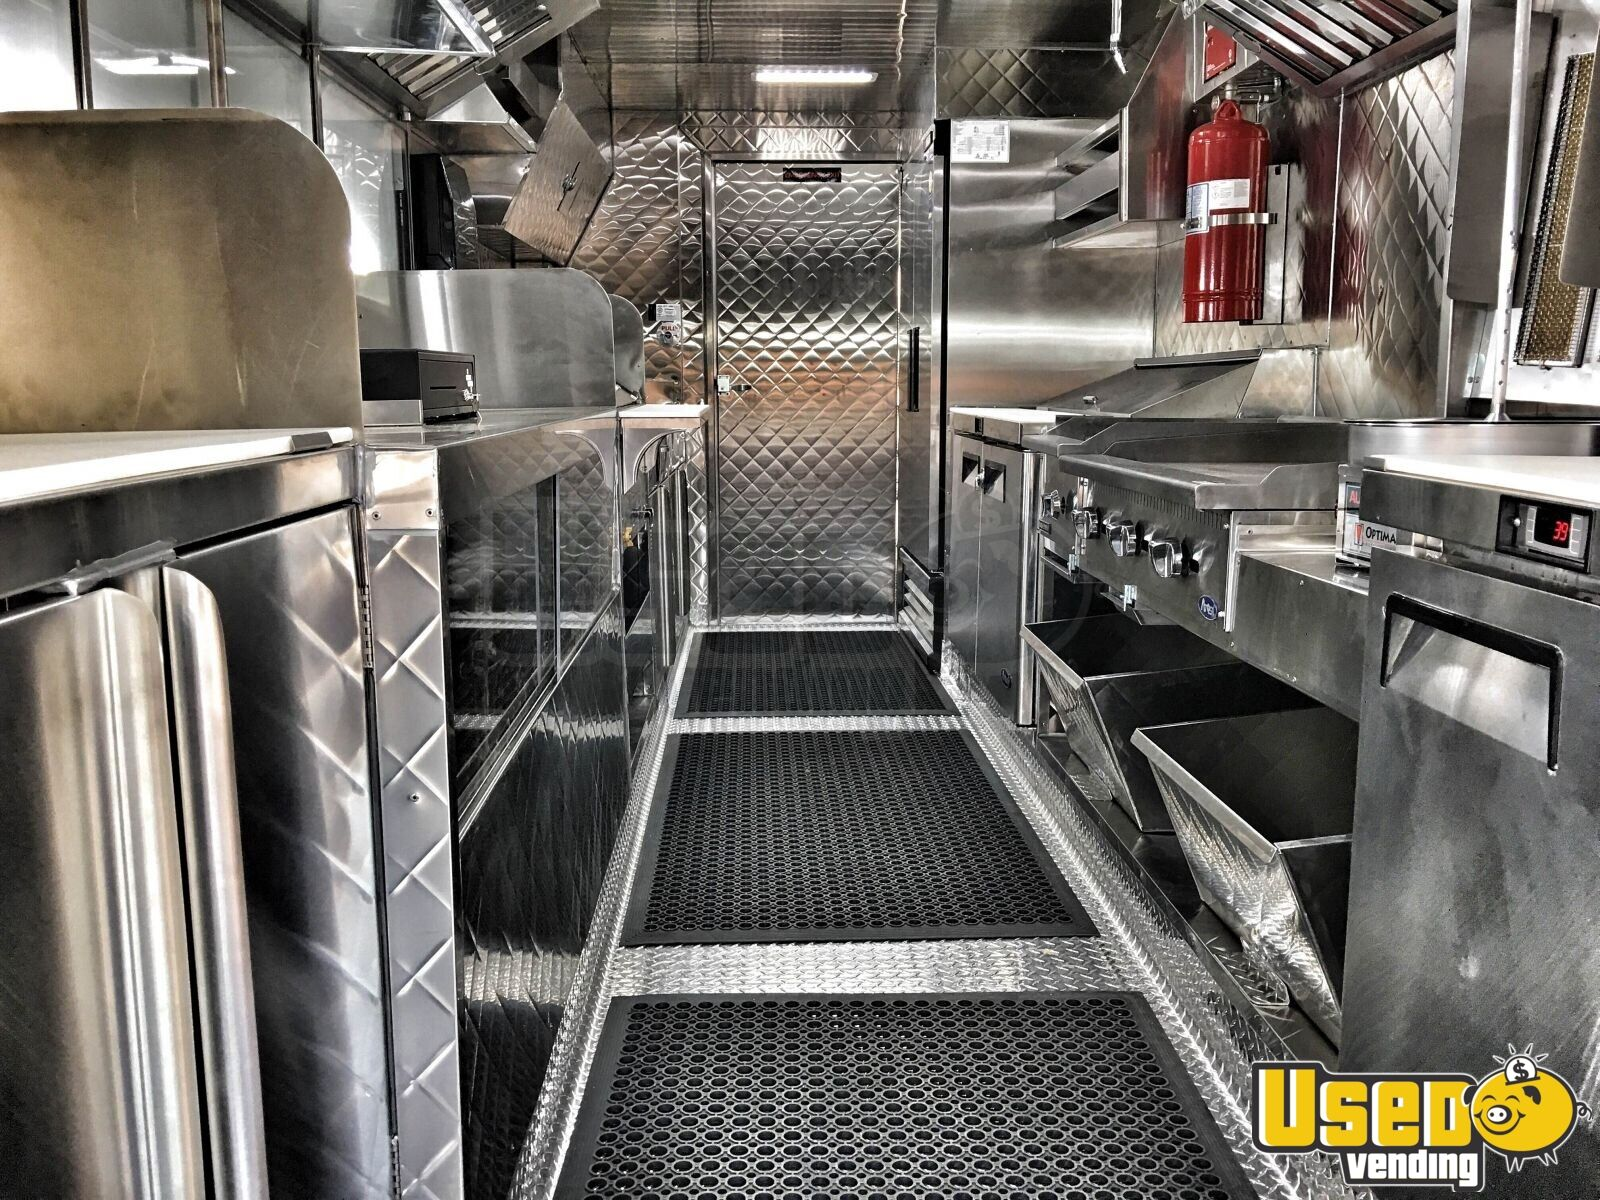 1995 Chevrolet Food Truck Stainless Steel Wall Covers California Diesel Engine for Sale - 5